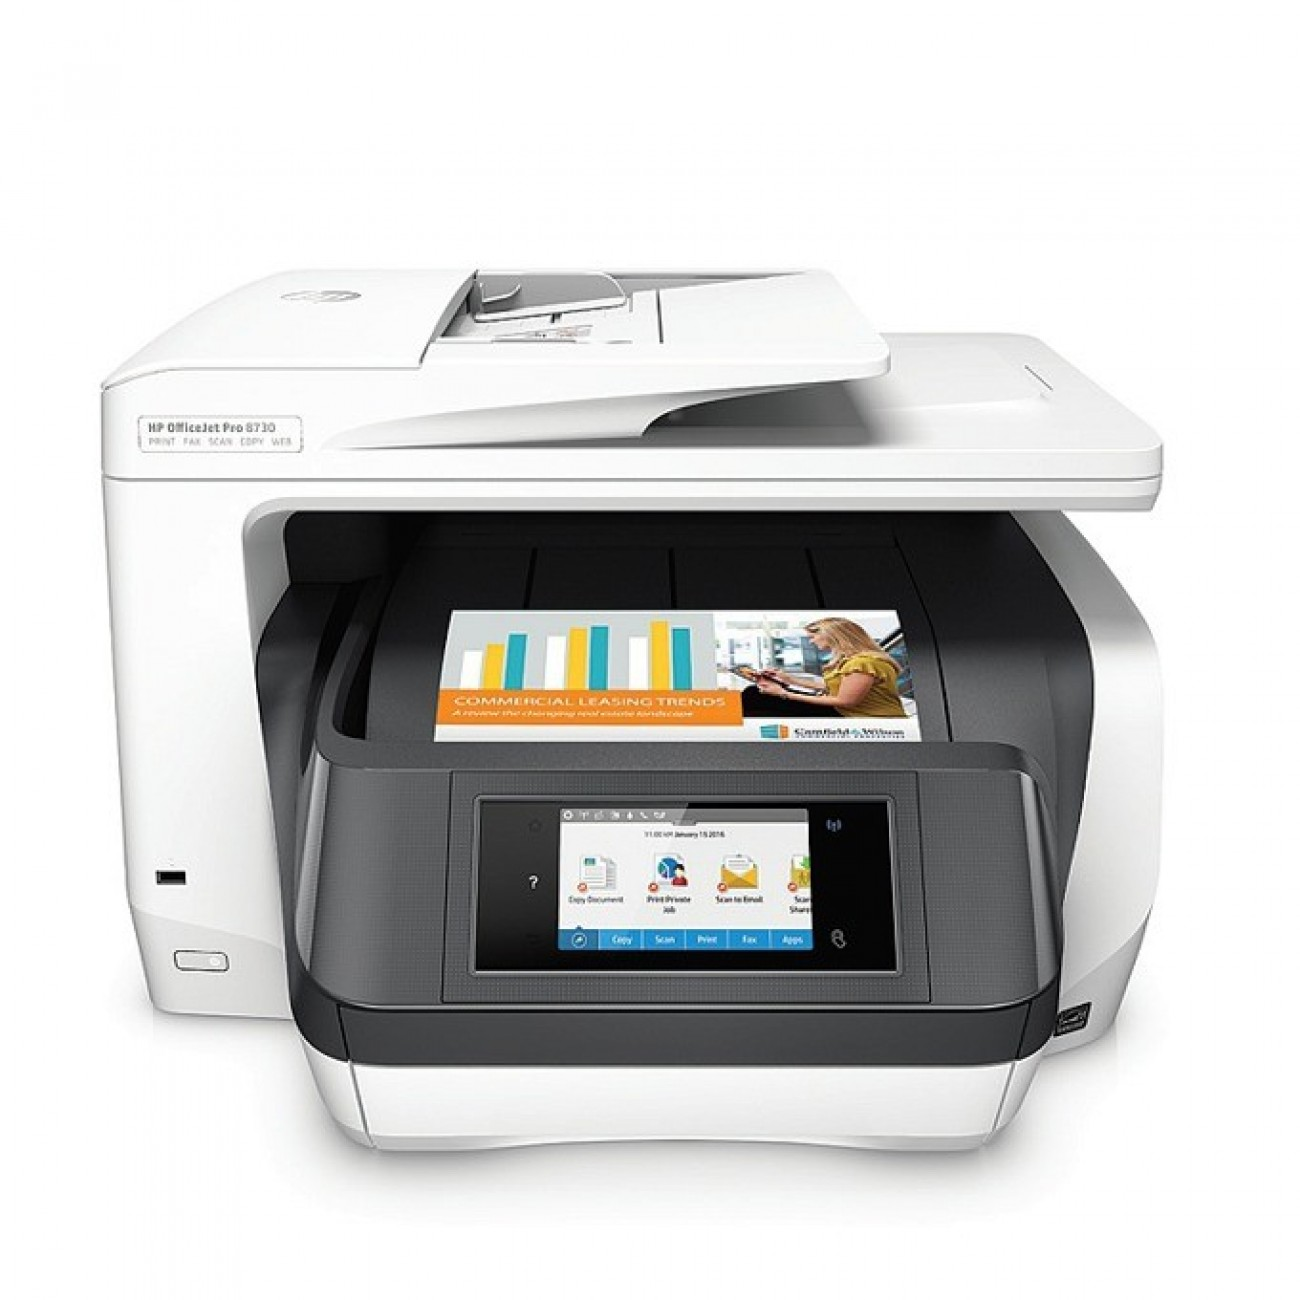 HP OfficeJet Pro 8730, цветен мастилен принтер/скенер/копир/факс, 2400x1200 dpi, 36стр/мин, Wi-Fi, LAN, USB в Мултифункционали и MFP -  | Alleop